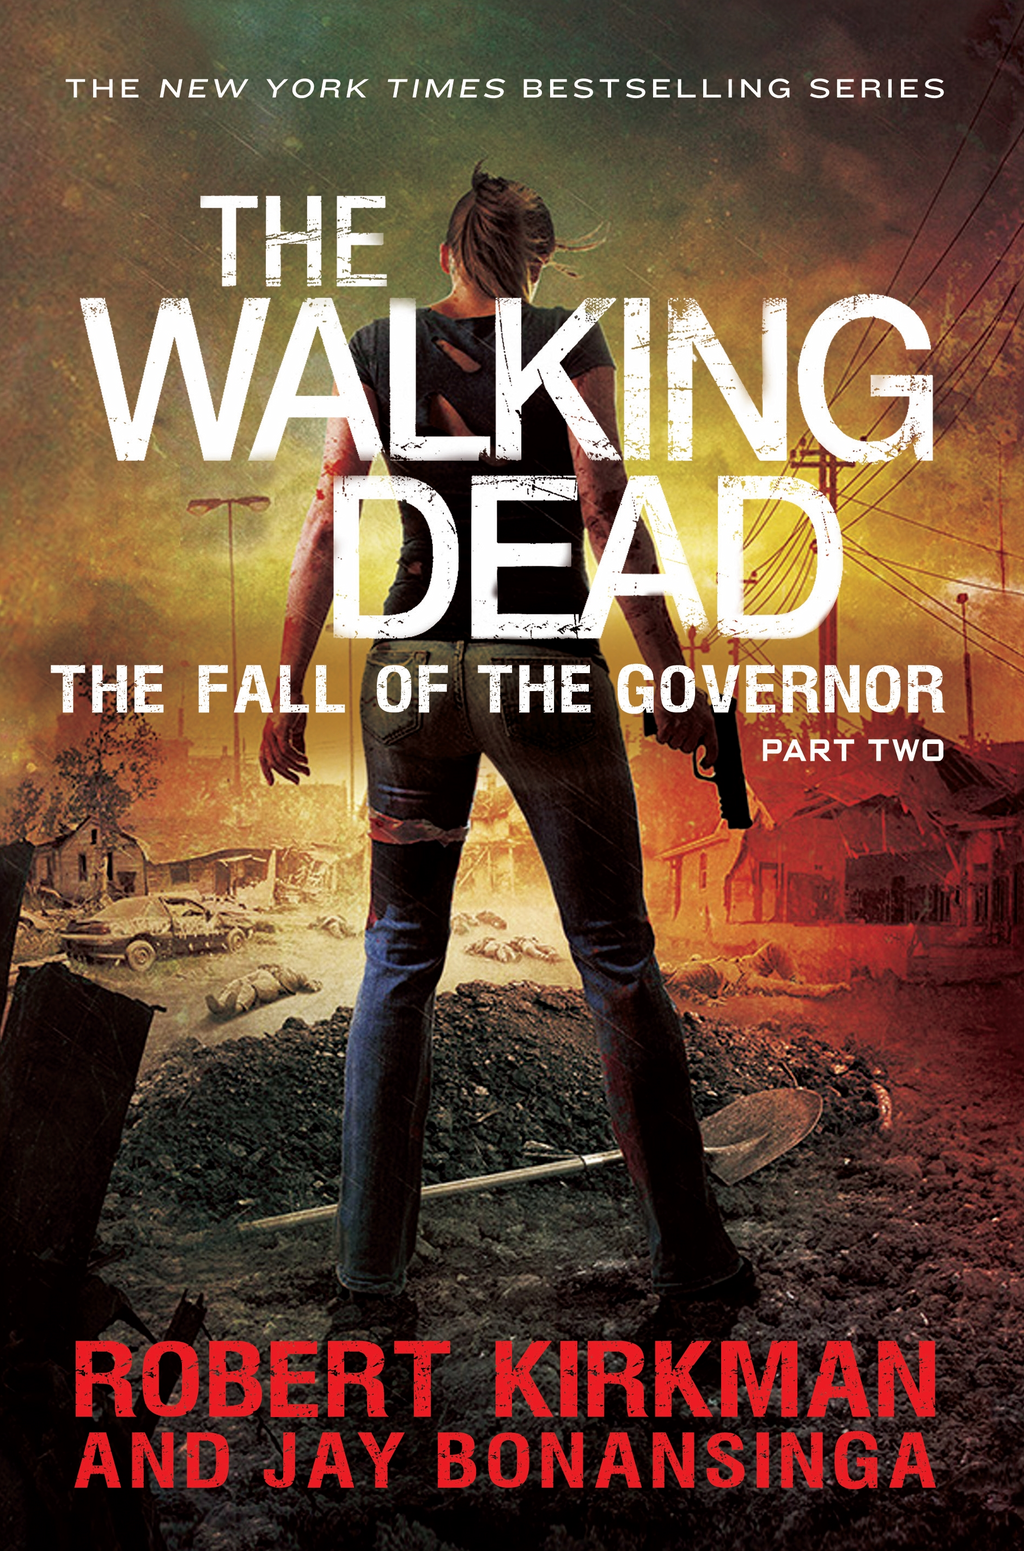 The Walking Dead: Fall of the Governor Part Two